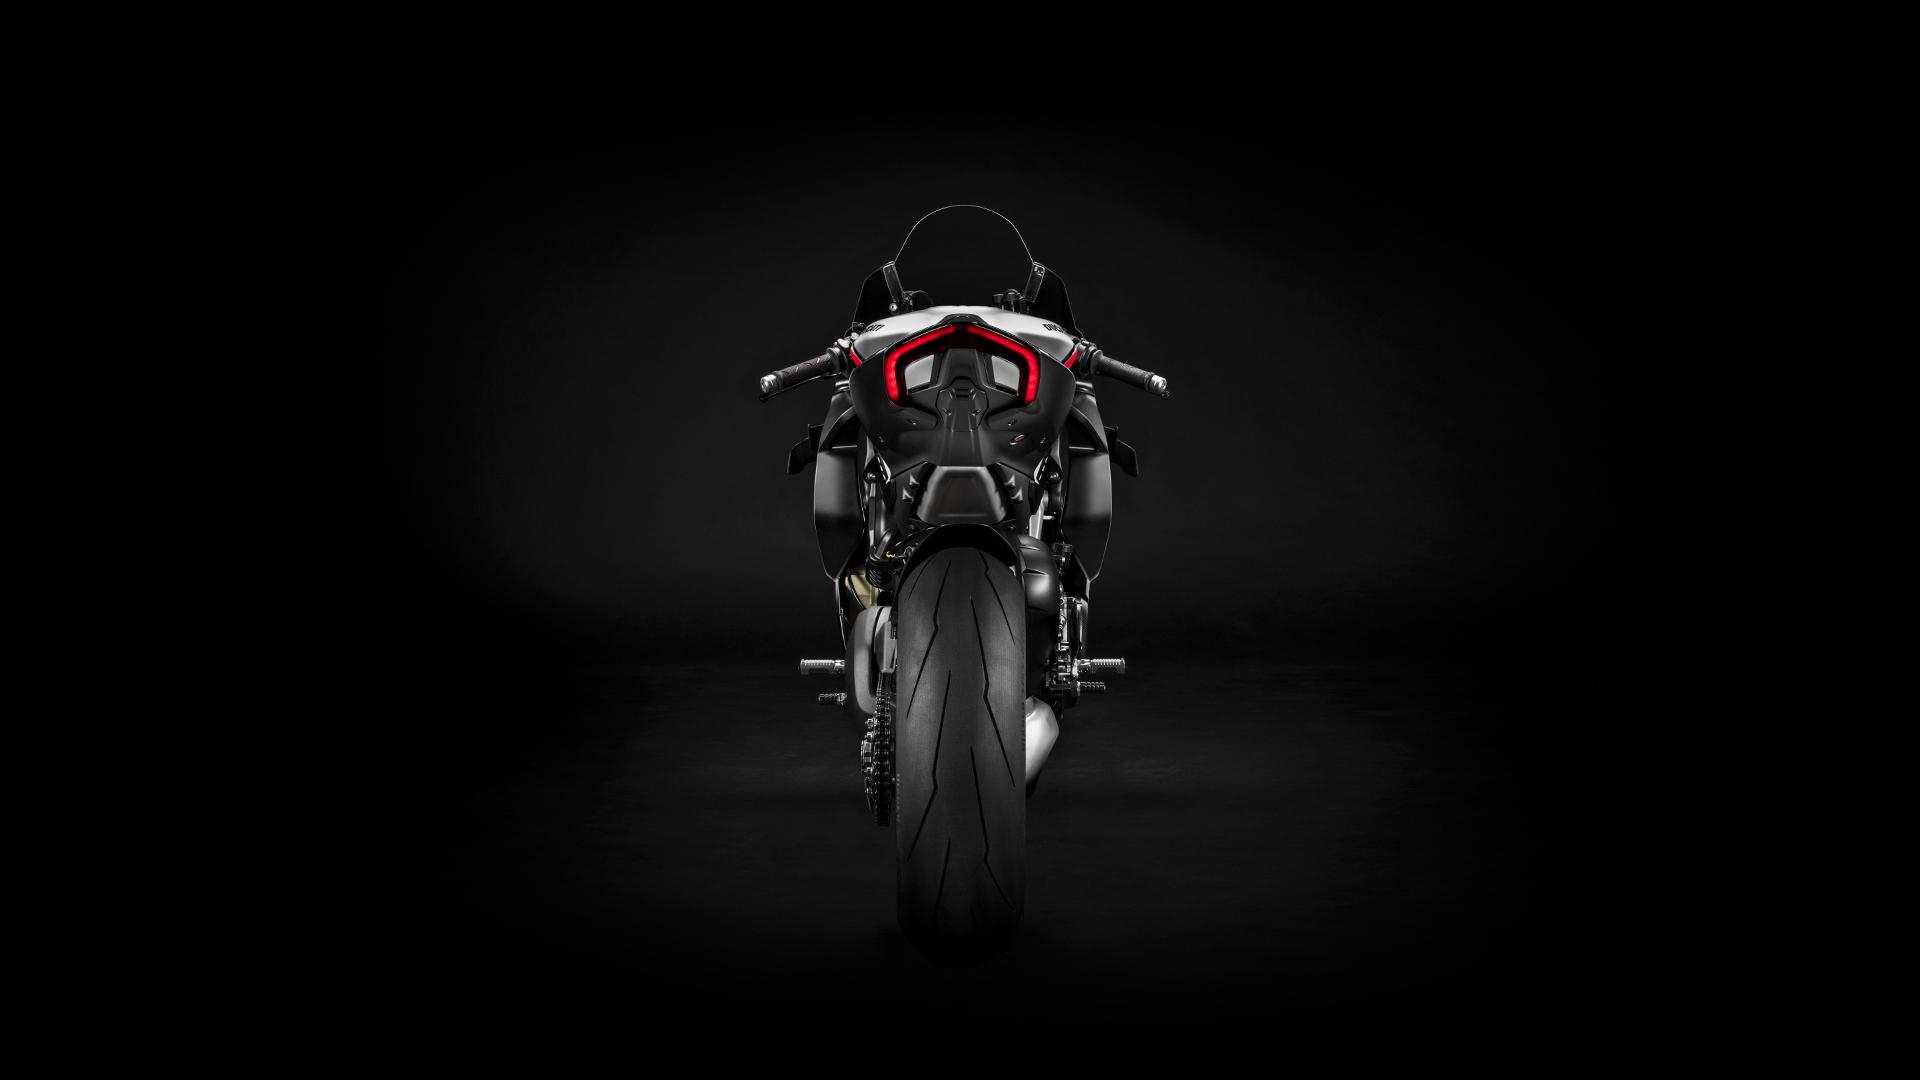 Ducati V4 Panigale - Page 23 Pv4-sp13